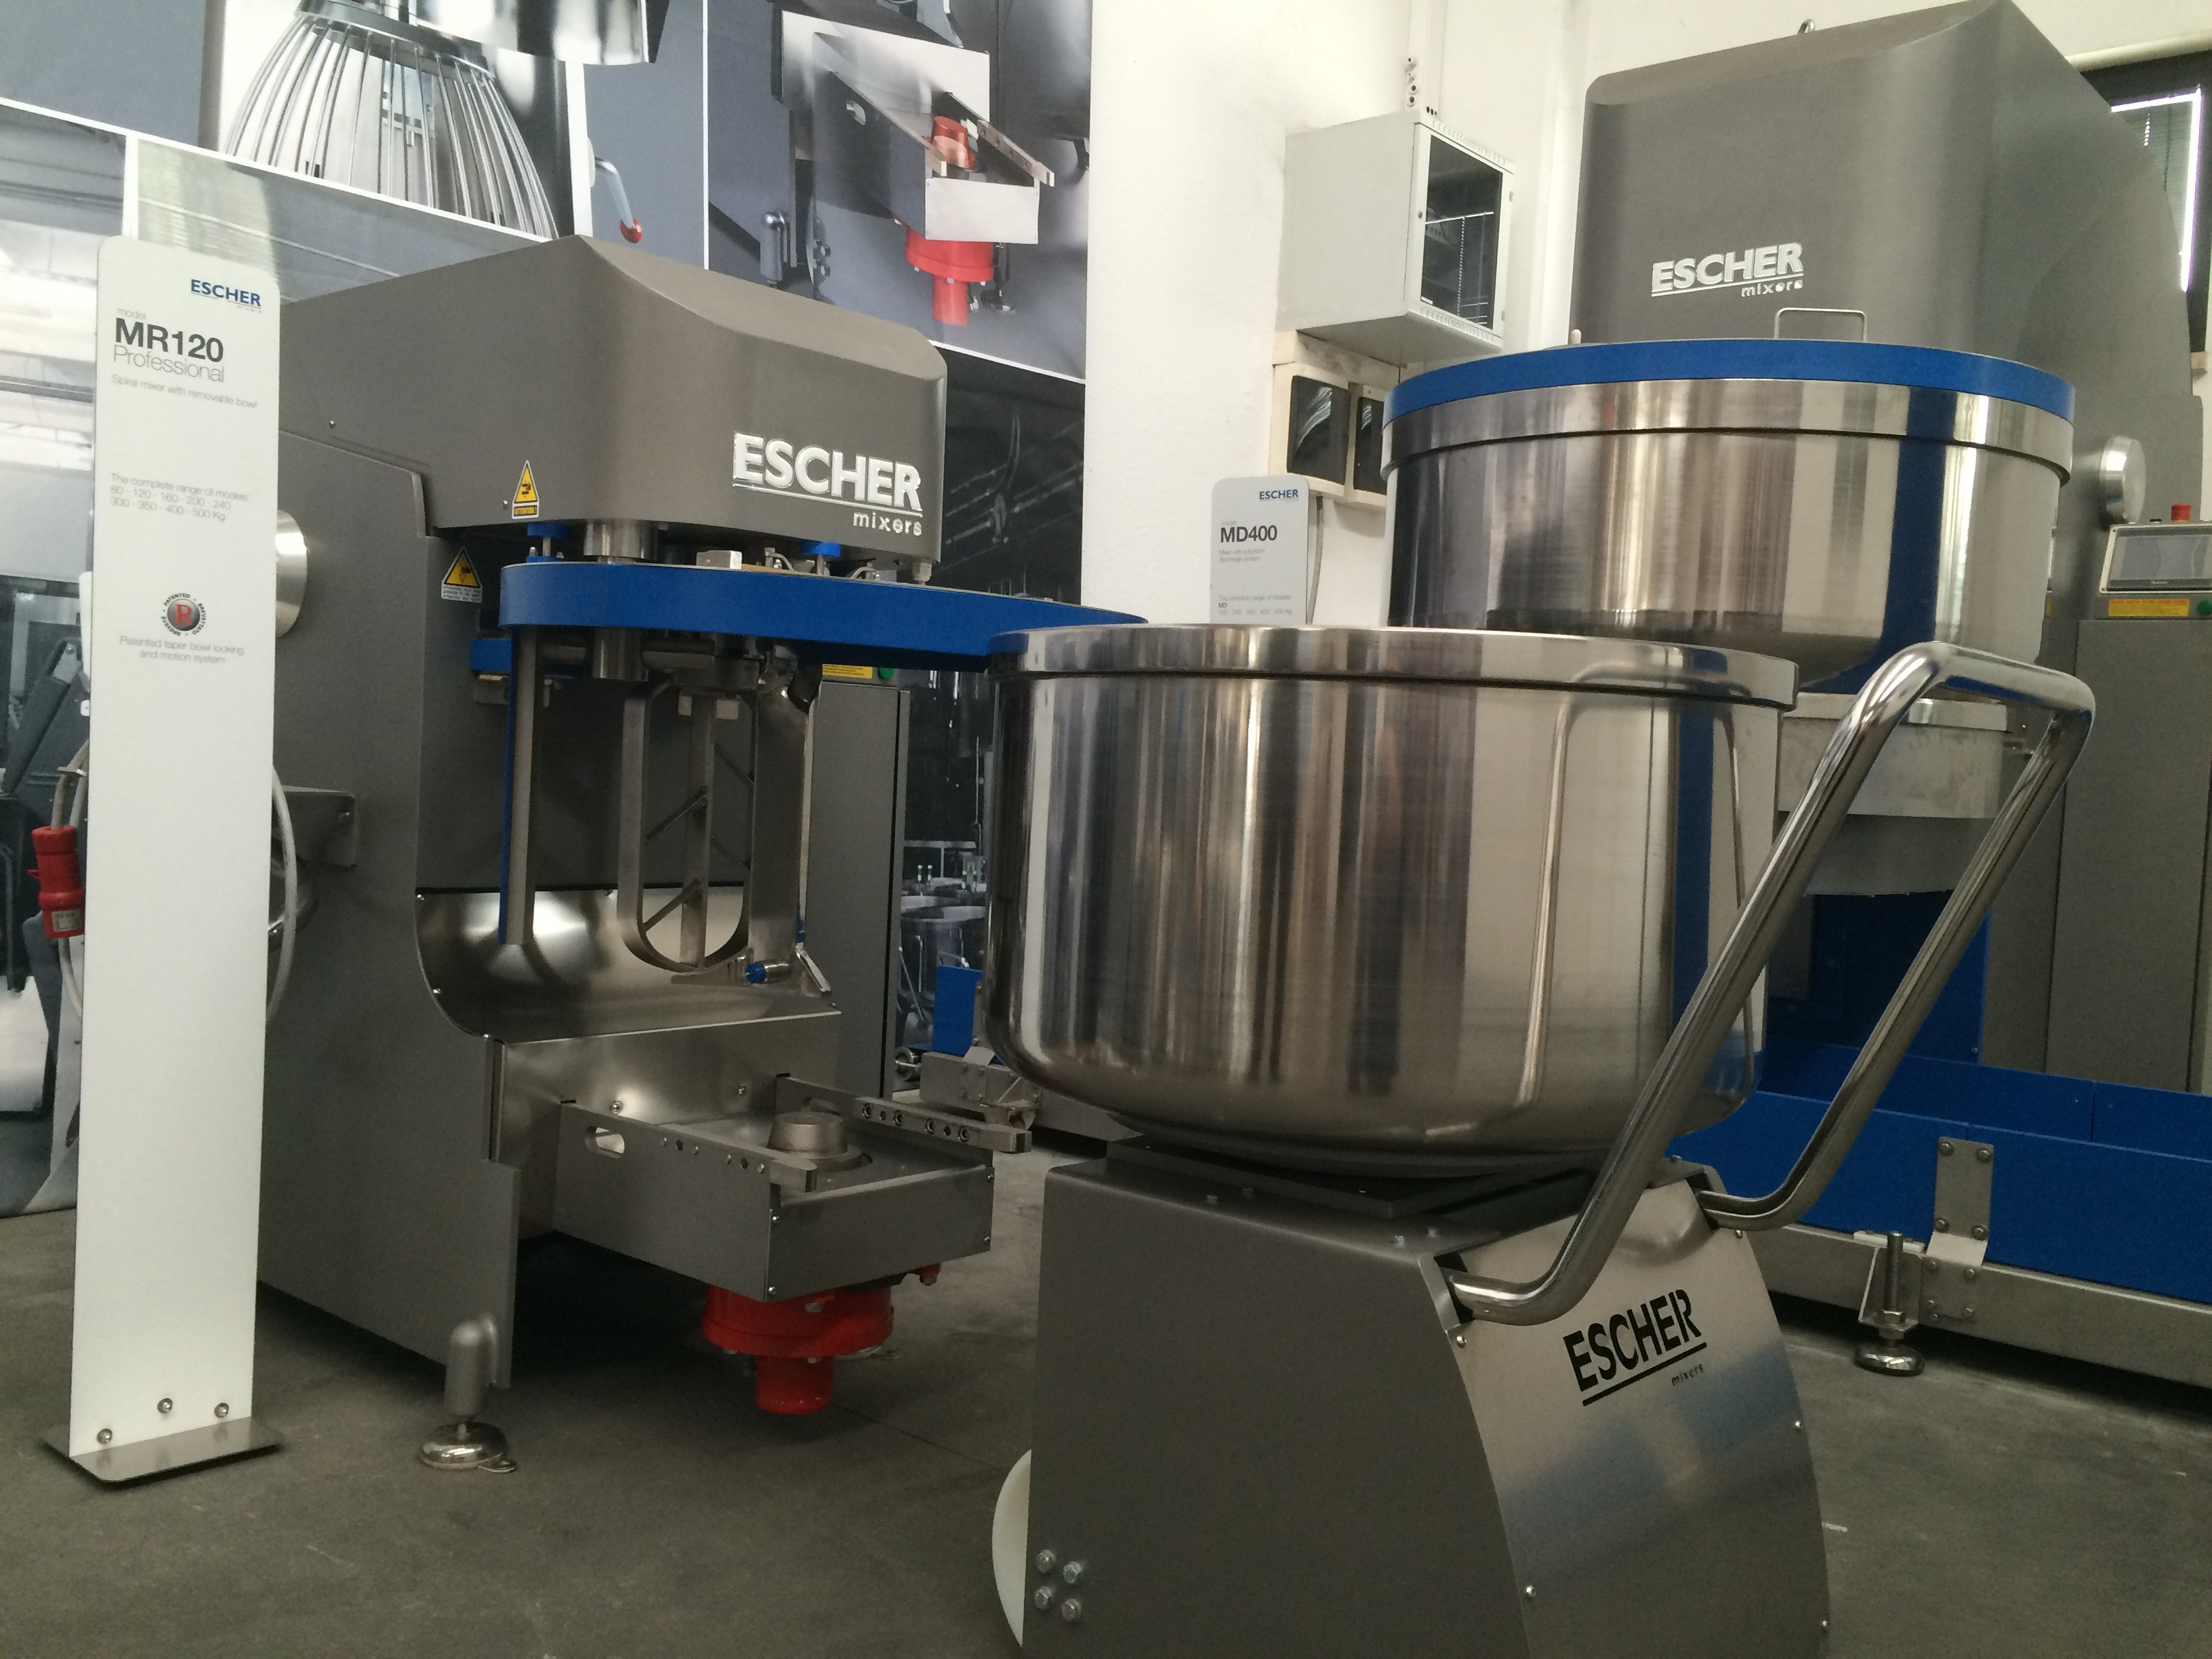 Escher mixers - the most stable quality in mixing all over the world